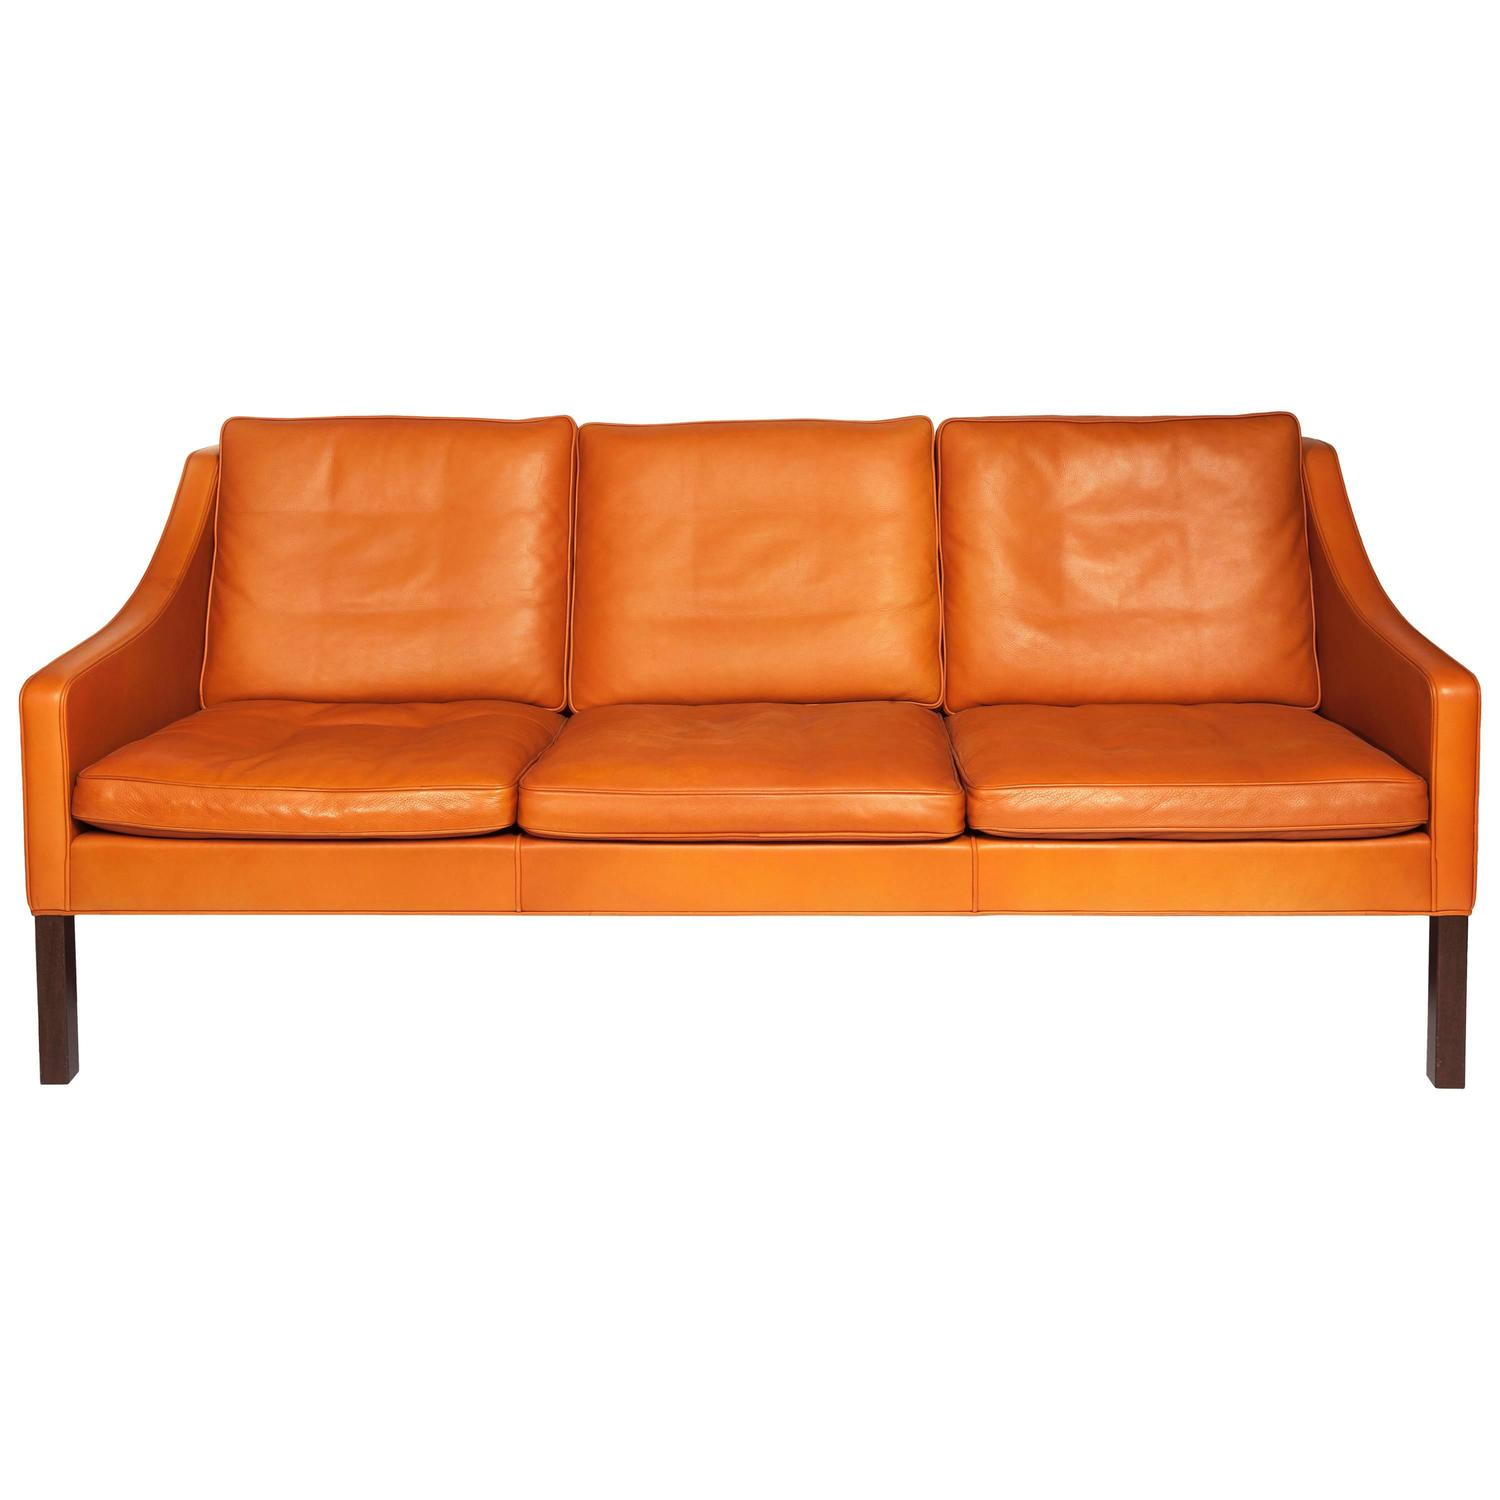 b rge mogensen orange leather three seat sofa 1960s for sale at 1stdibs. Black Bedroom Furniture Sets. Home Design Ideas